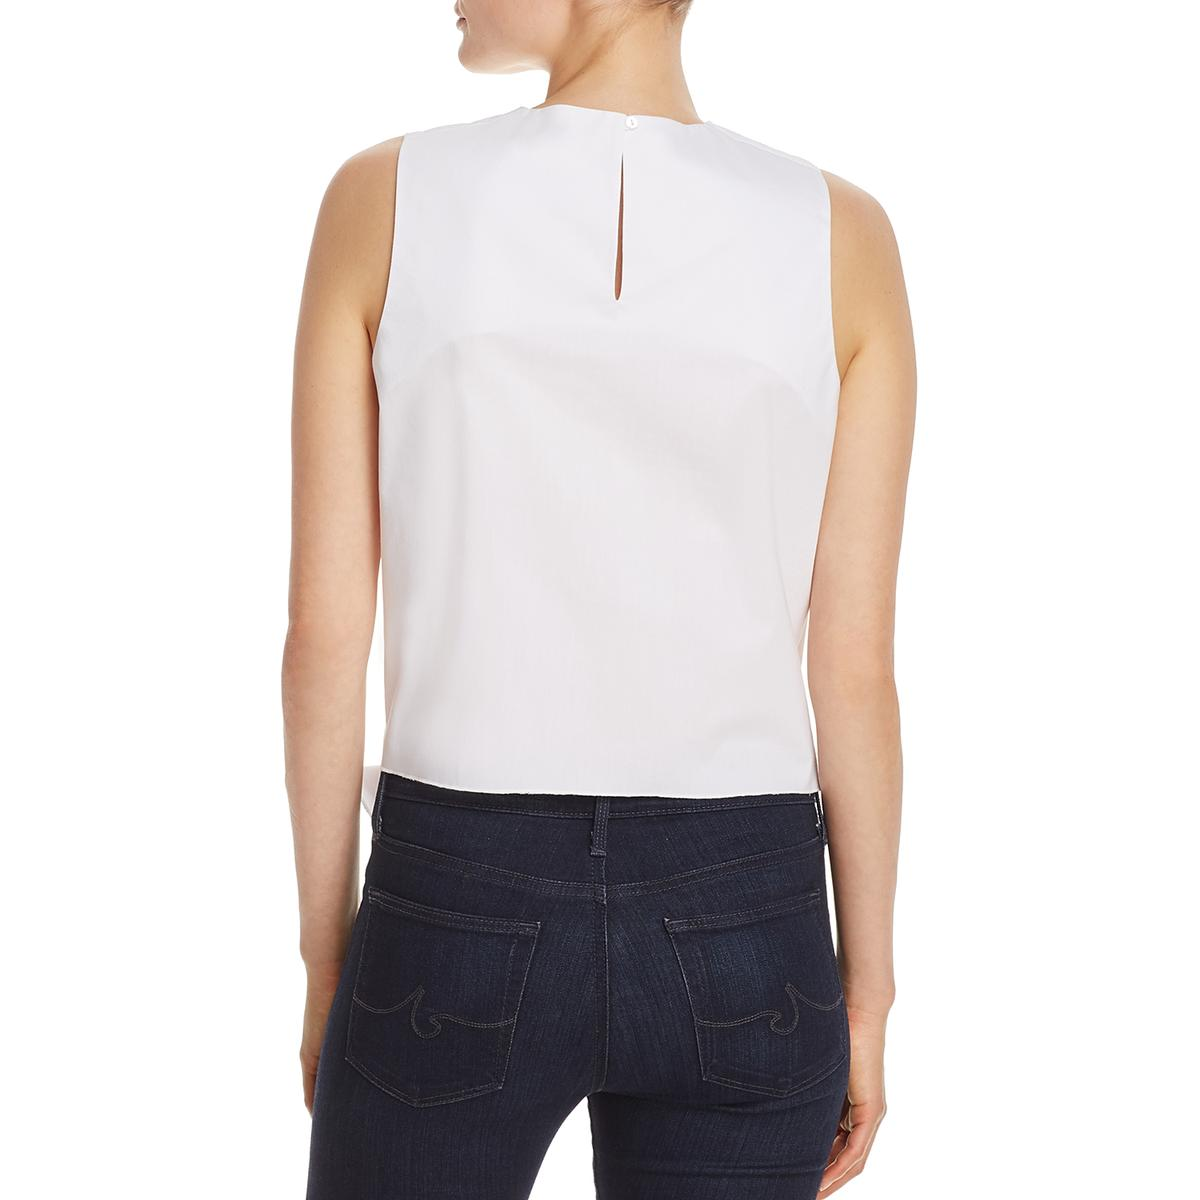 42cc1fdaec11f7 Details about Cupio Womens Front-Tie Keyhole Sleeveless Casual Top Shirt  BHFO 1093